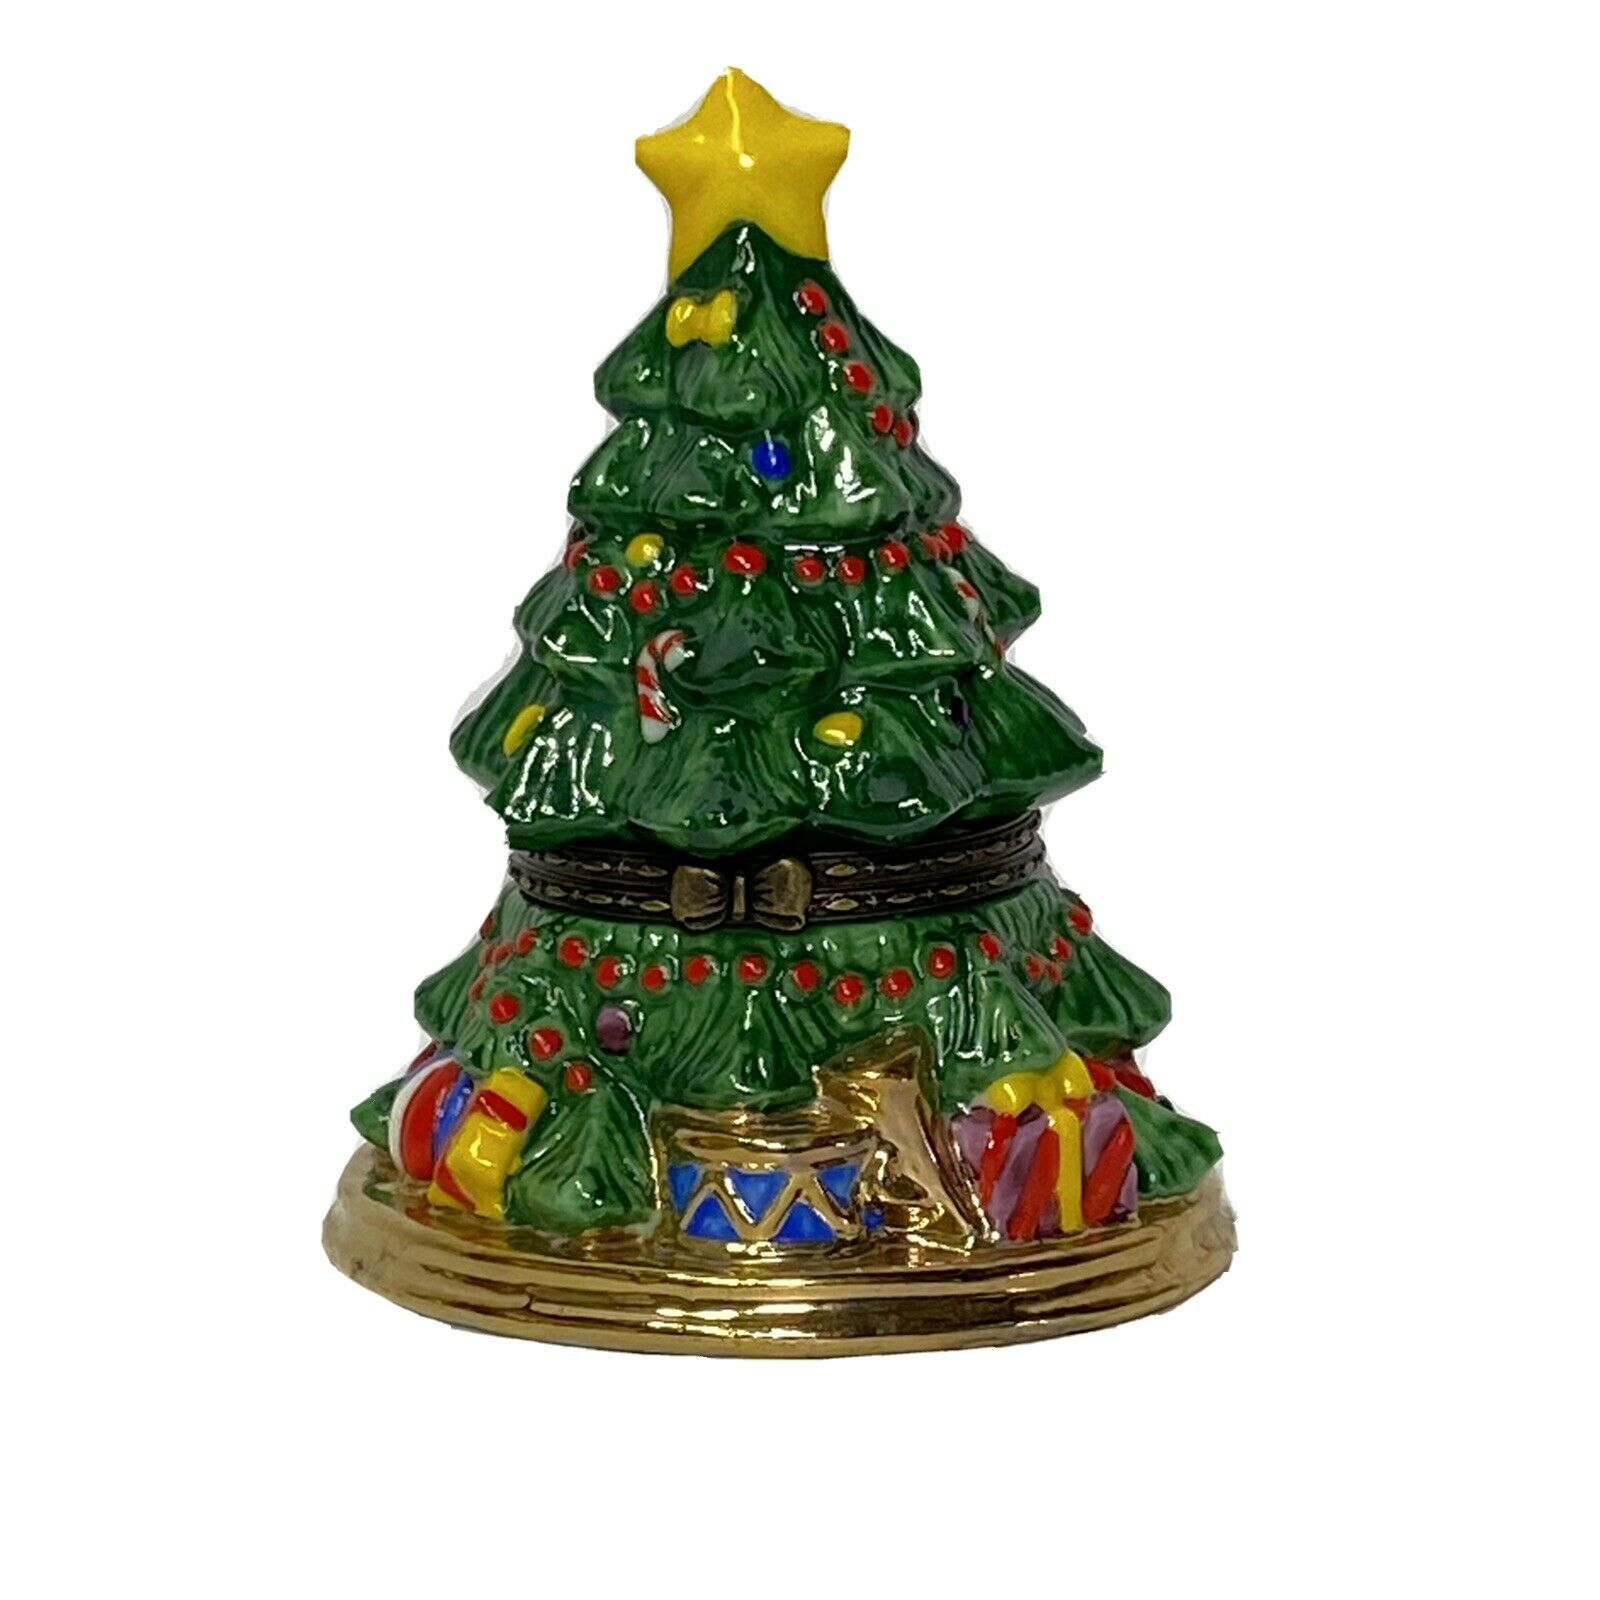 Primary image for Dept 56 Merry Christmas Tree Hinged Keepsake Trinket Box Holiday Décor